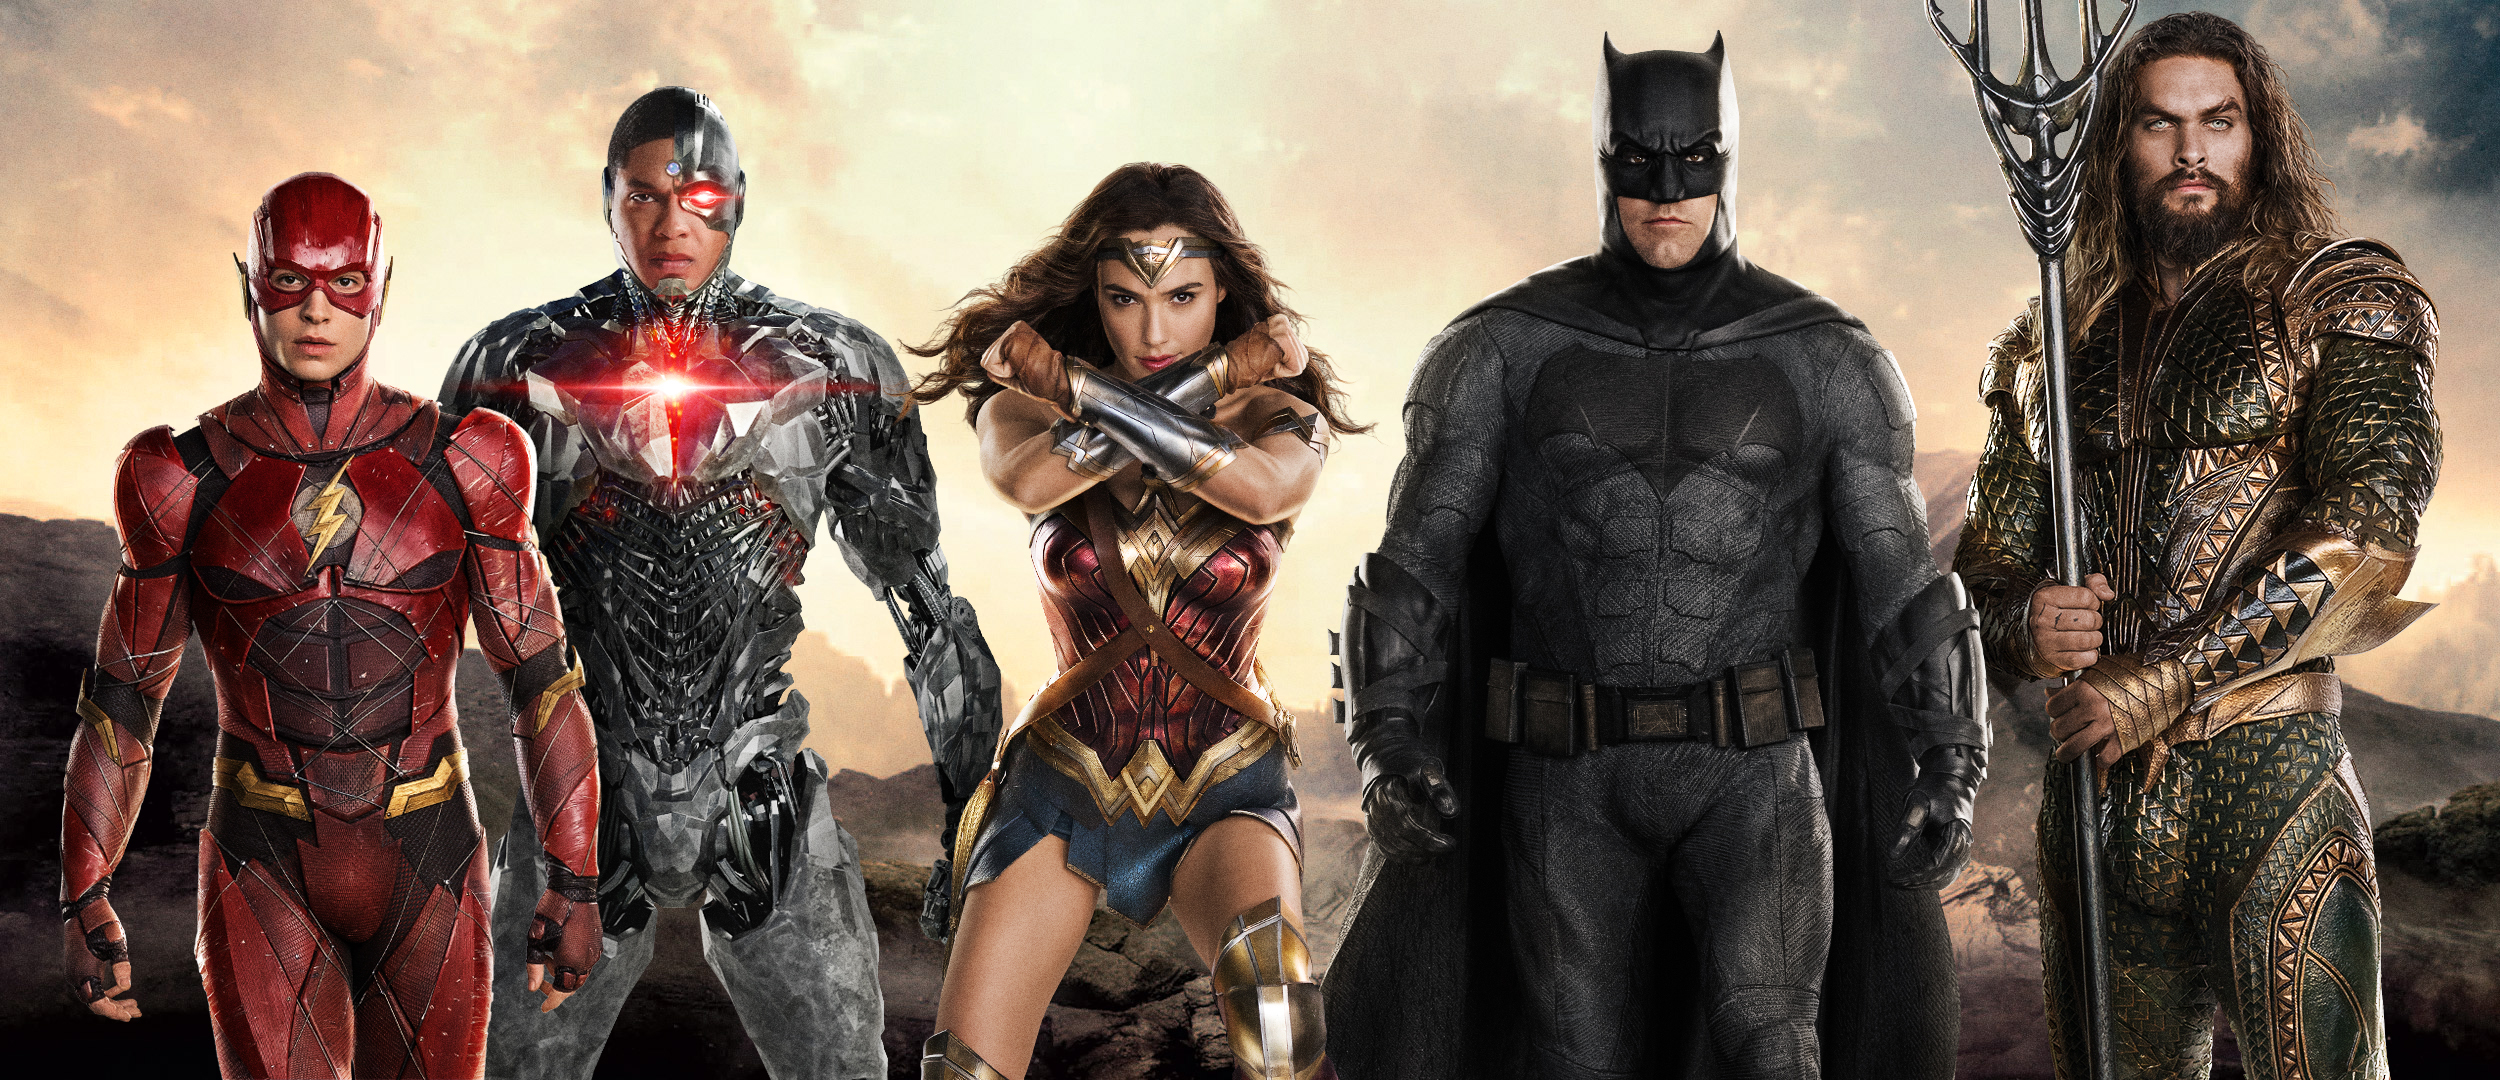 Hd wallpaper justice league - Hd Wallpaper Background Id 821545 2500x1080 Movie Justice League